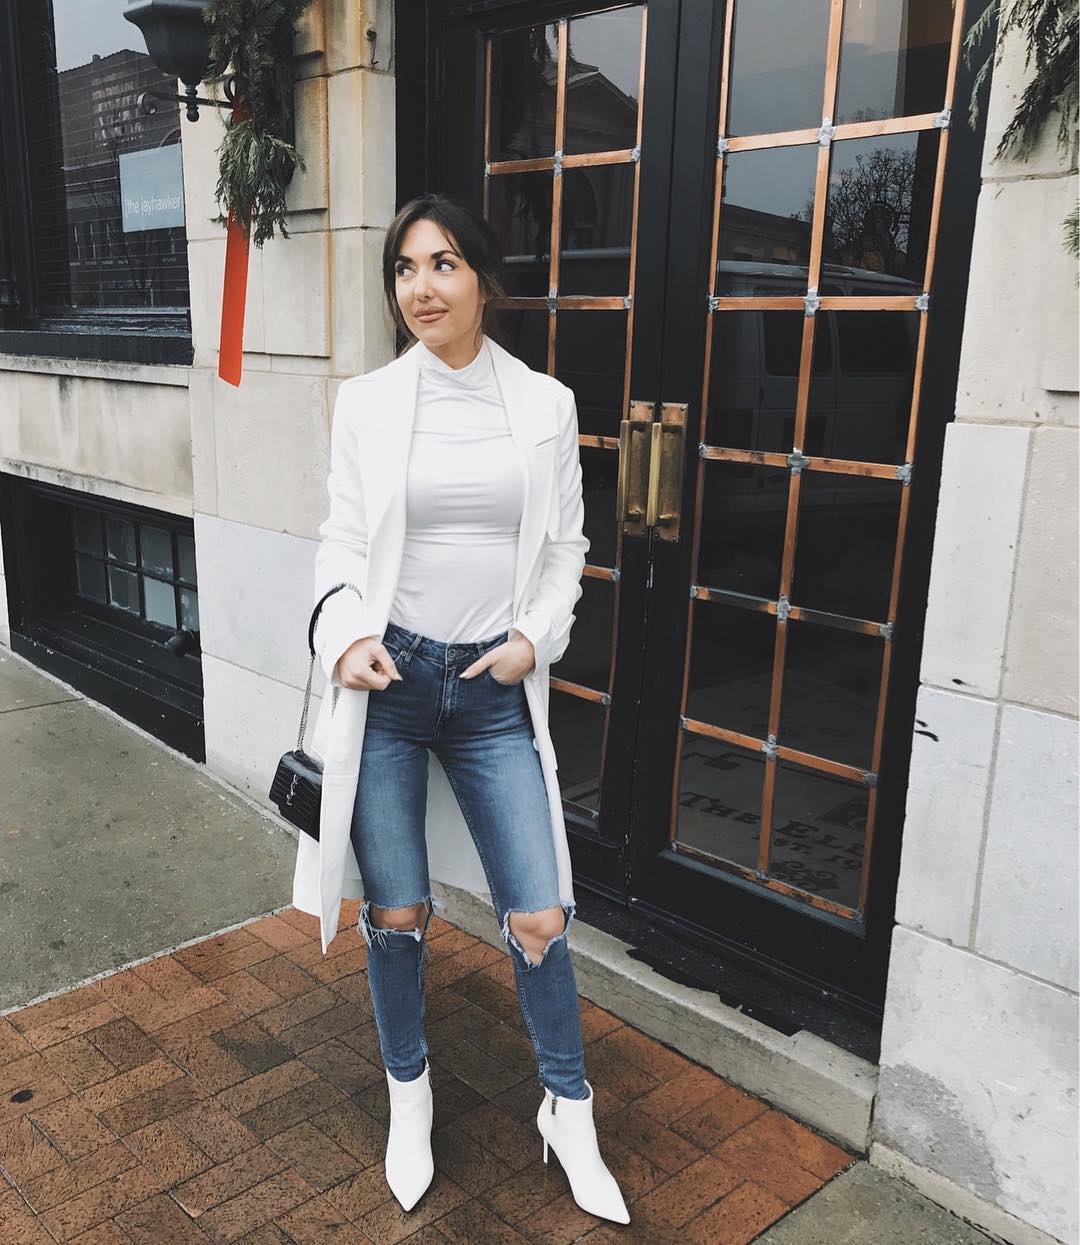 Dazzling White With Distressed Jeans